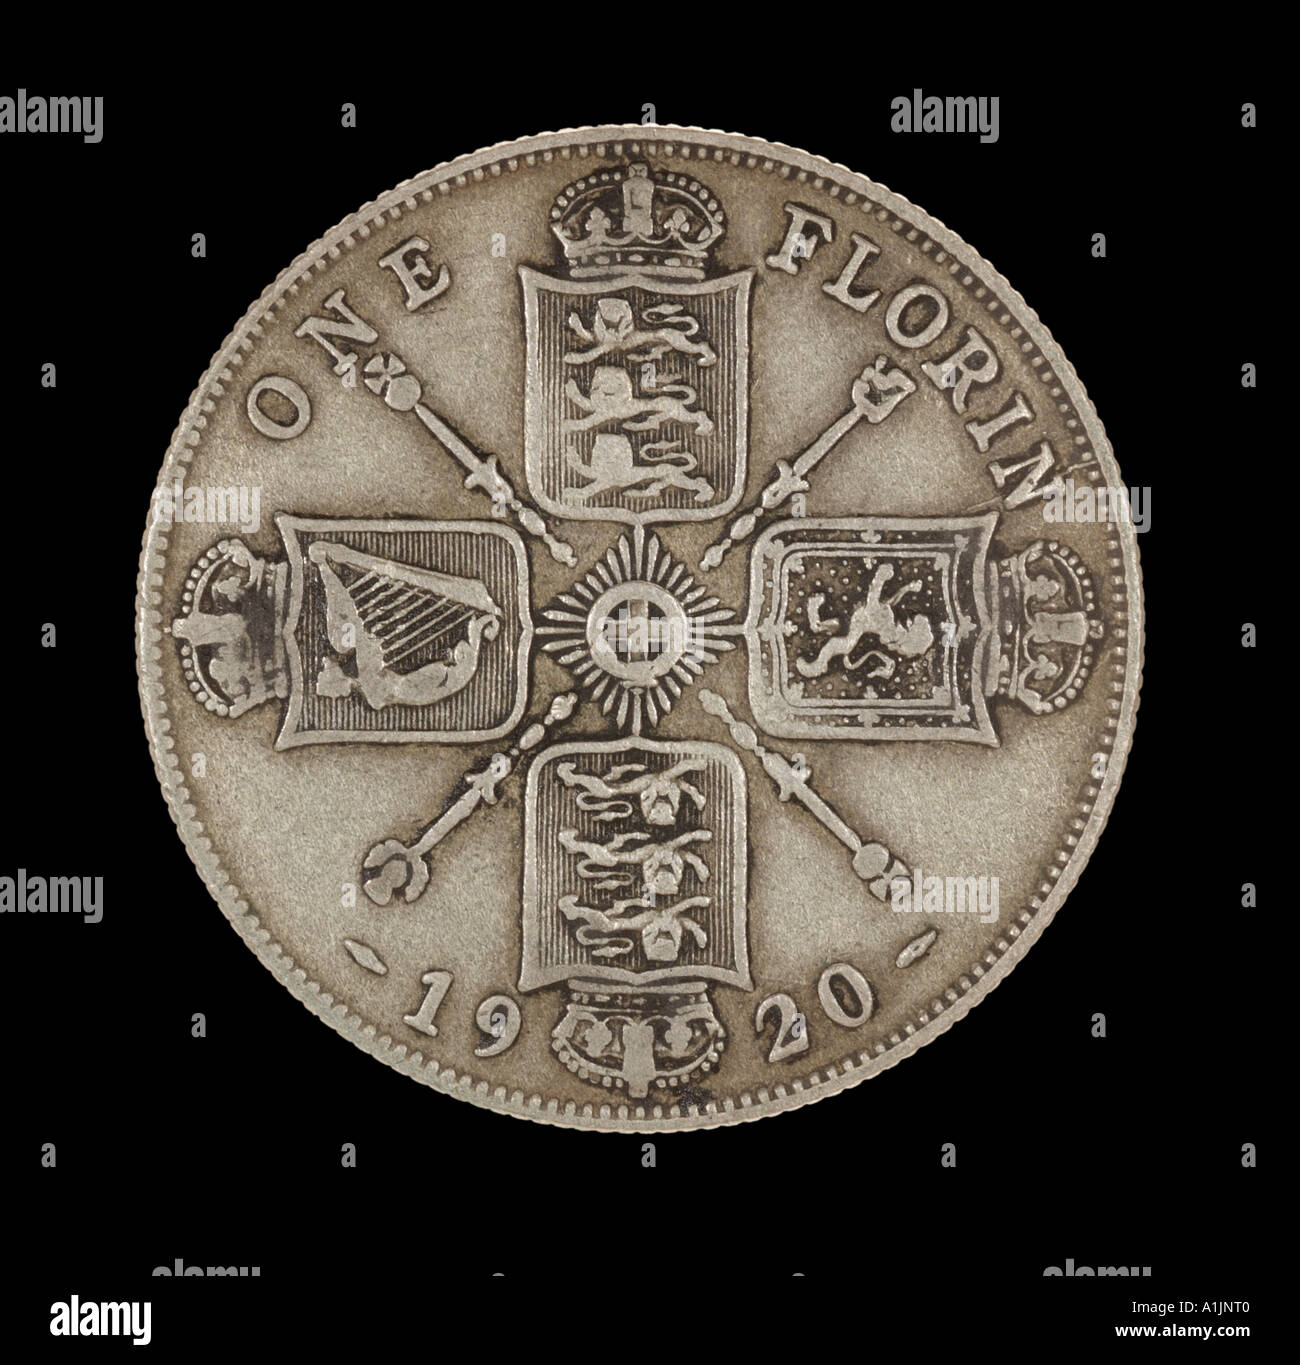 5 Shilling Stock Photos Amp 5 Shilling Stock Images Alamy